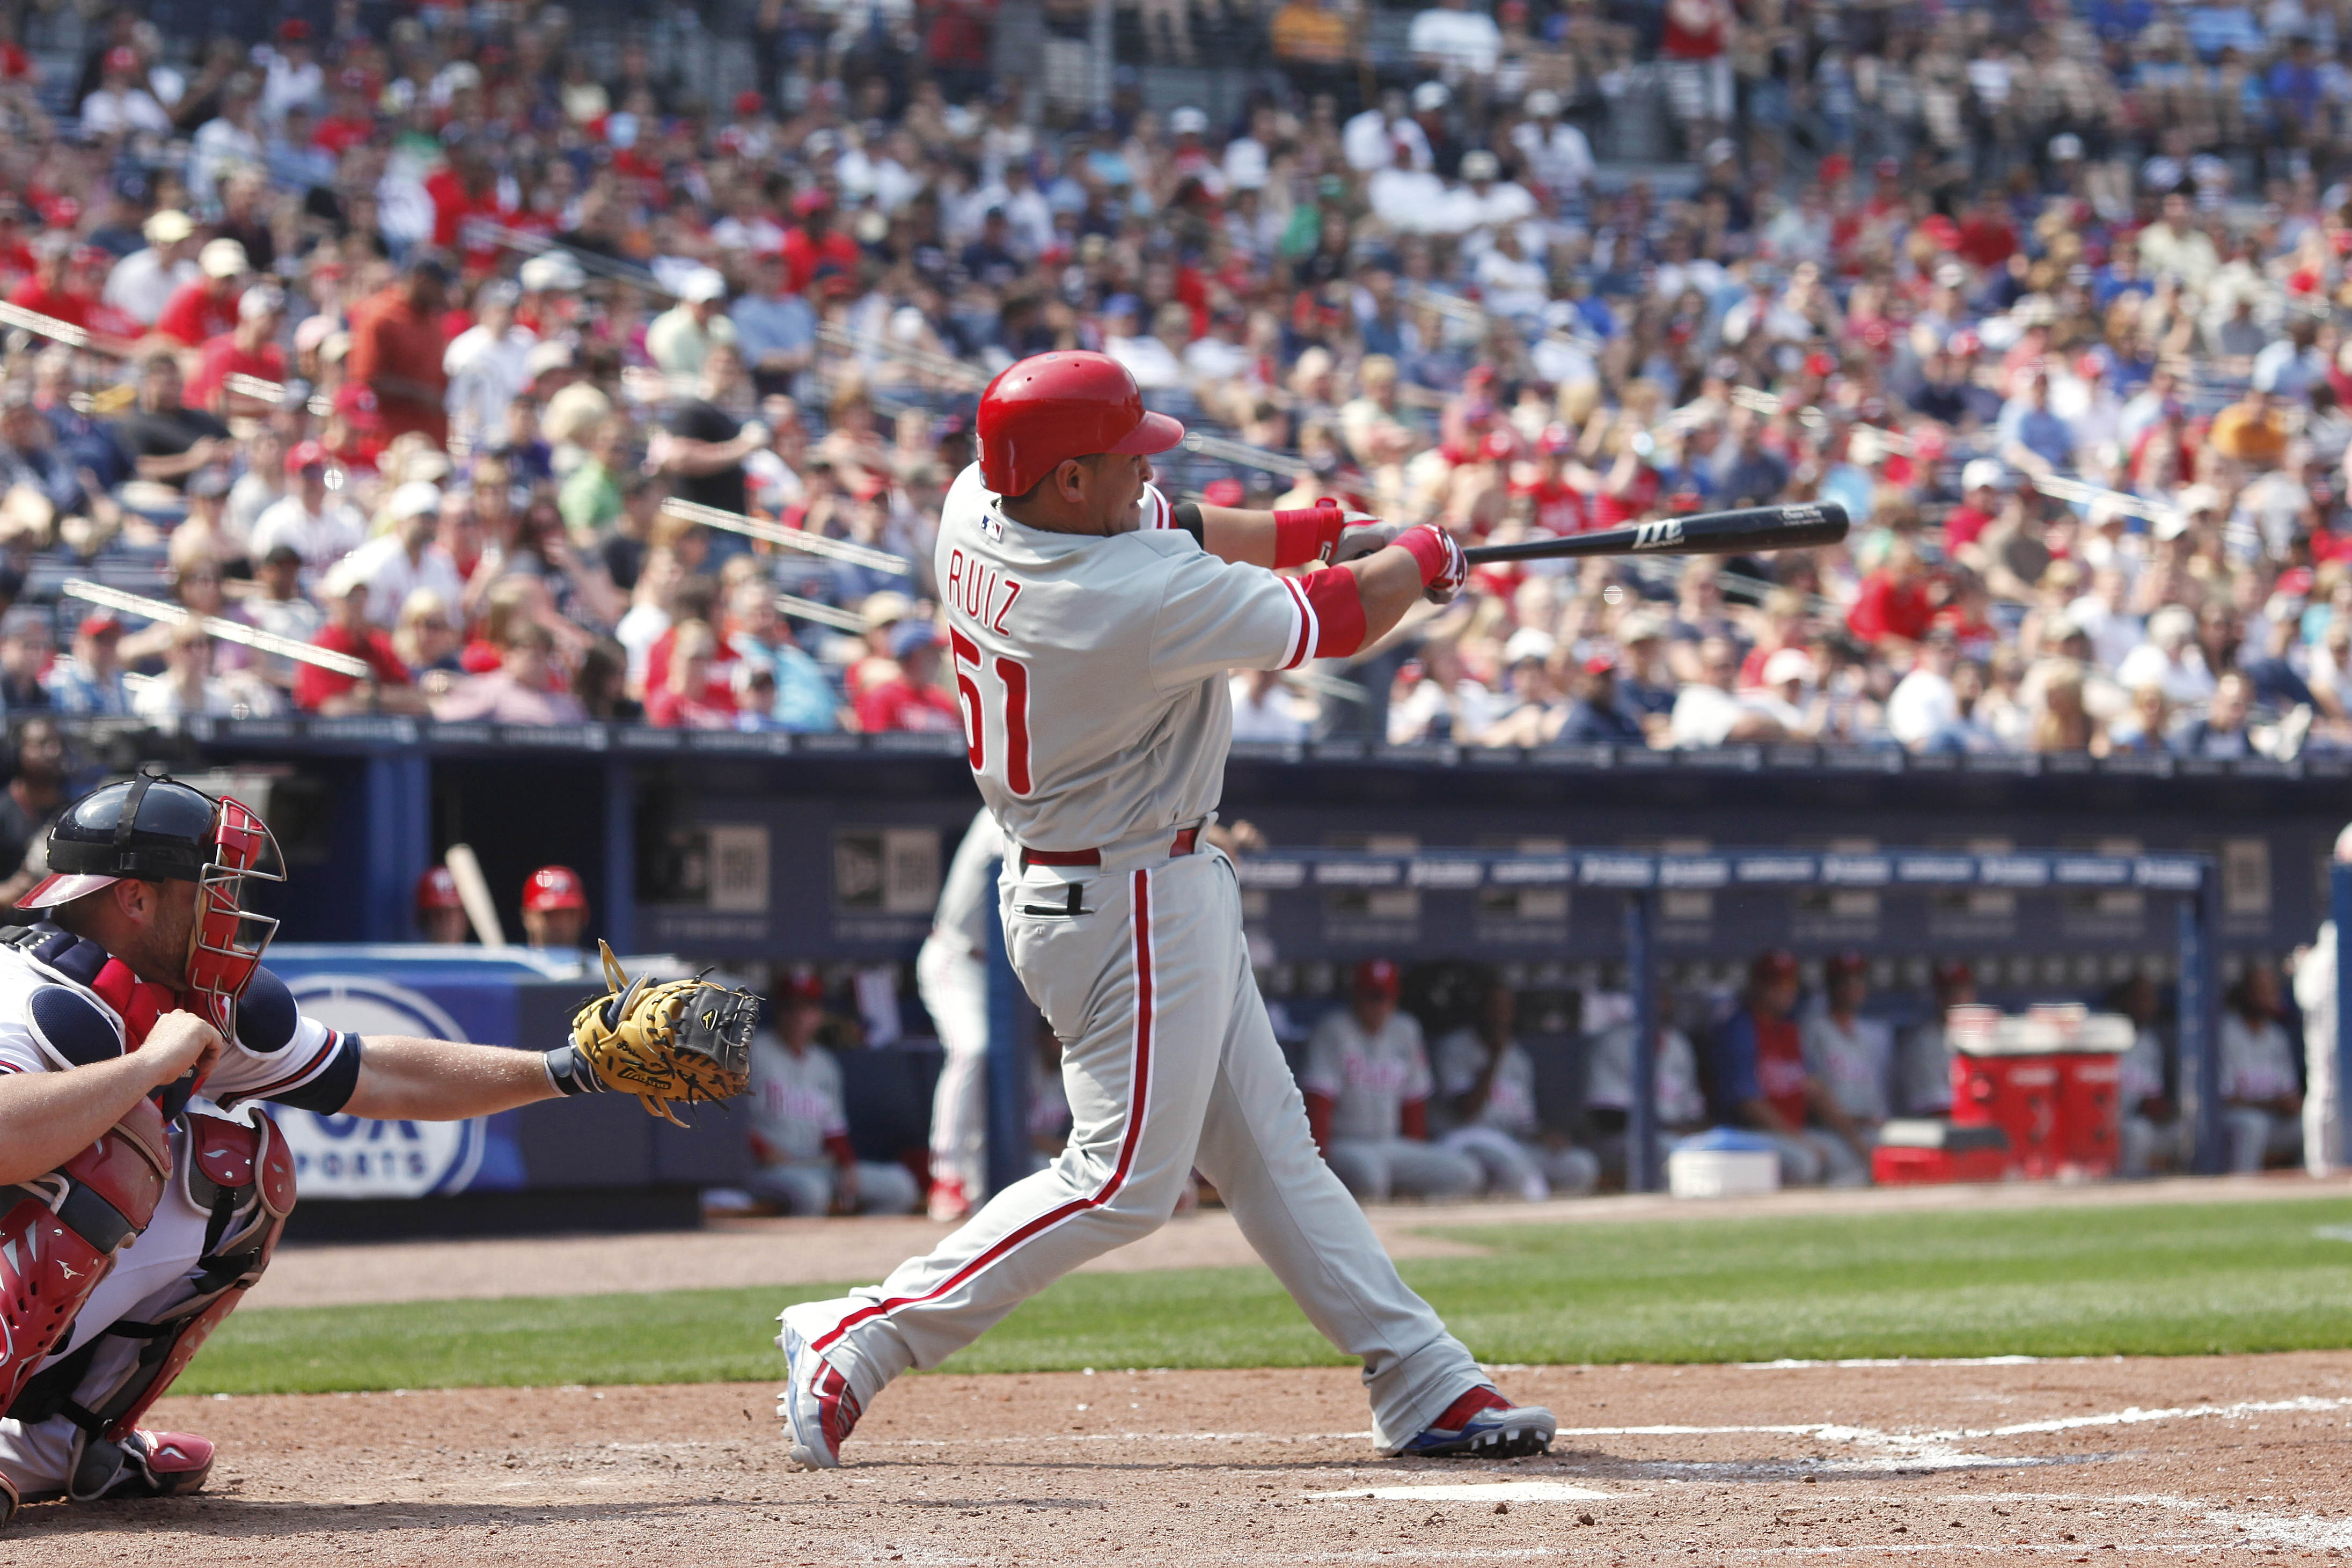 ATLANTA, GA - APRIL 9: Carlos Ruiz #51 of the Philadelphia Phillies drives in a run in the 8th inning with a double against the Atlanta Braves at Turner Field on April 9, 2011 in Atlanta, Georgia. The Phillies won 10-2. (Photo by Joe Robbins/Getty Images)